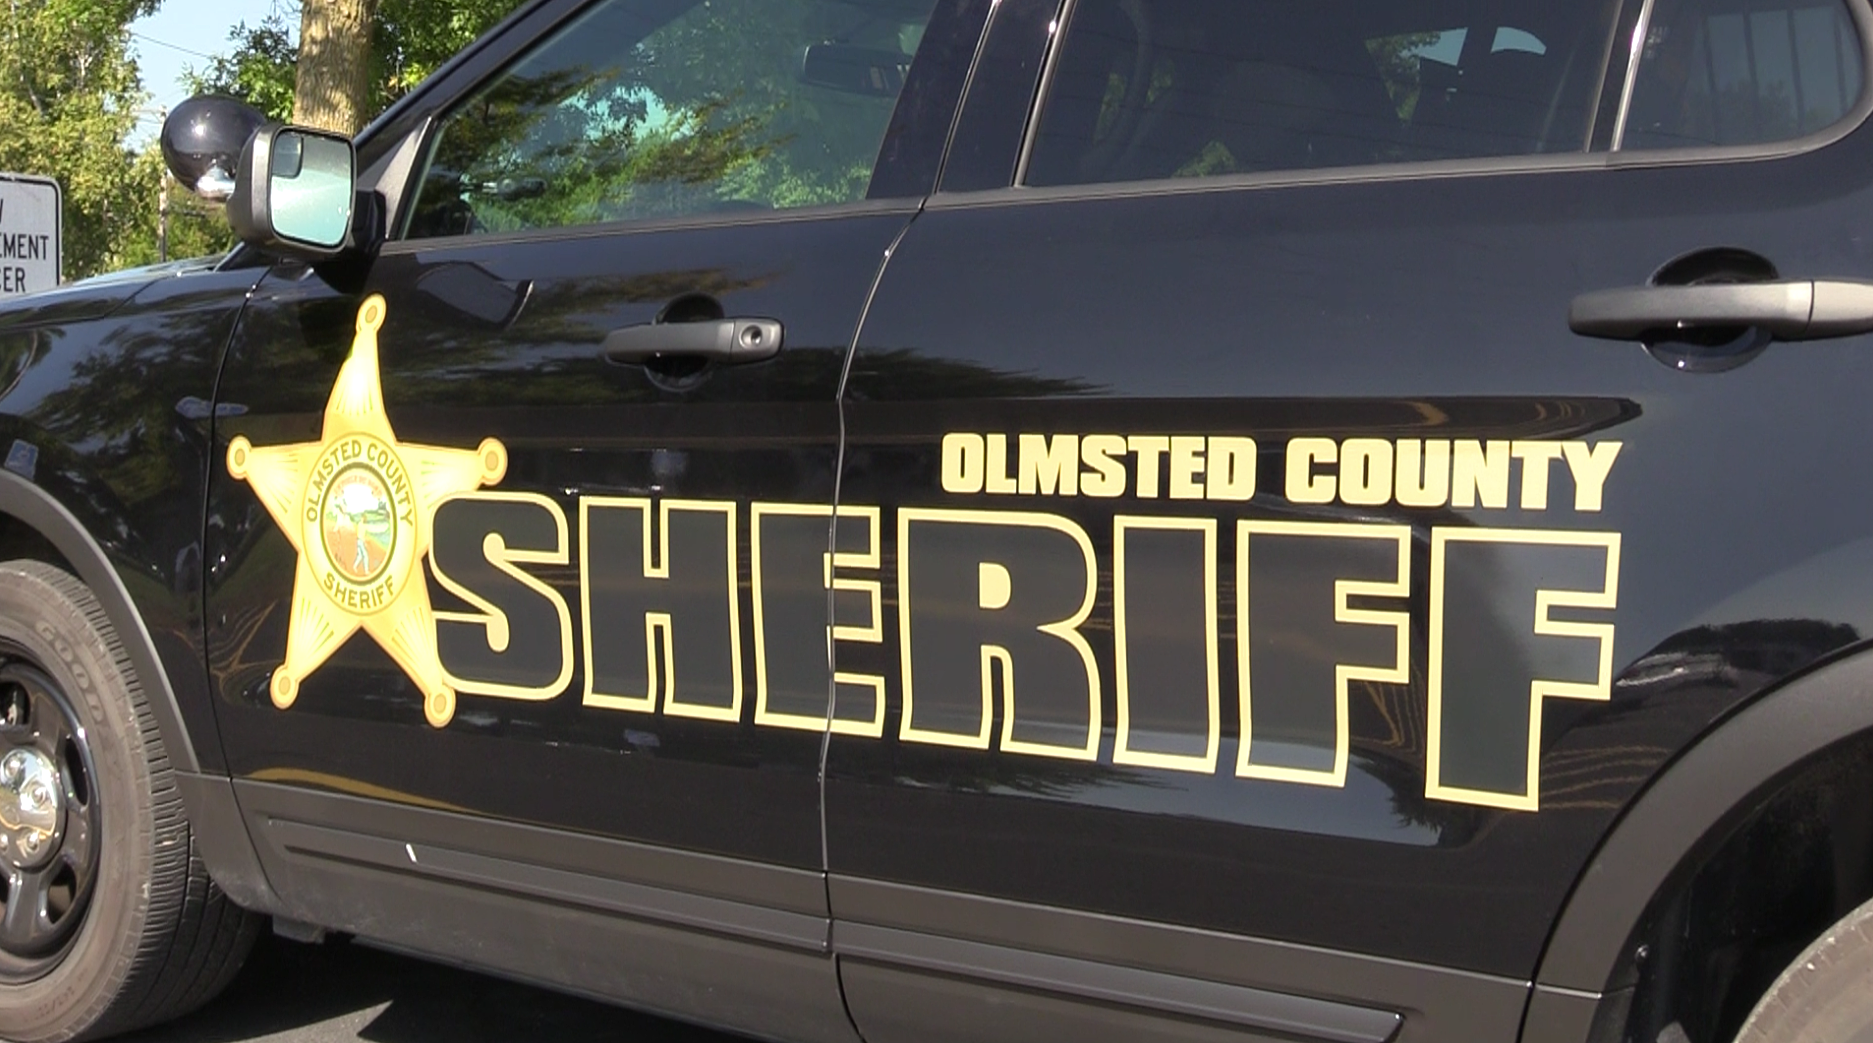 Is Olmsted County Breaking the Law Re ICE? The Sheriff Responds